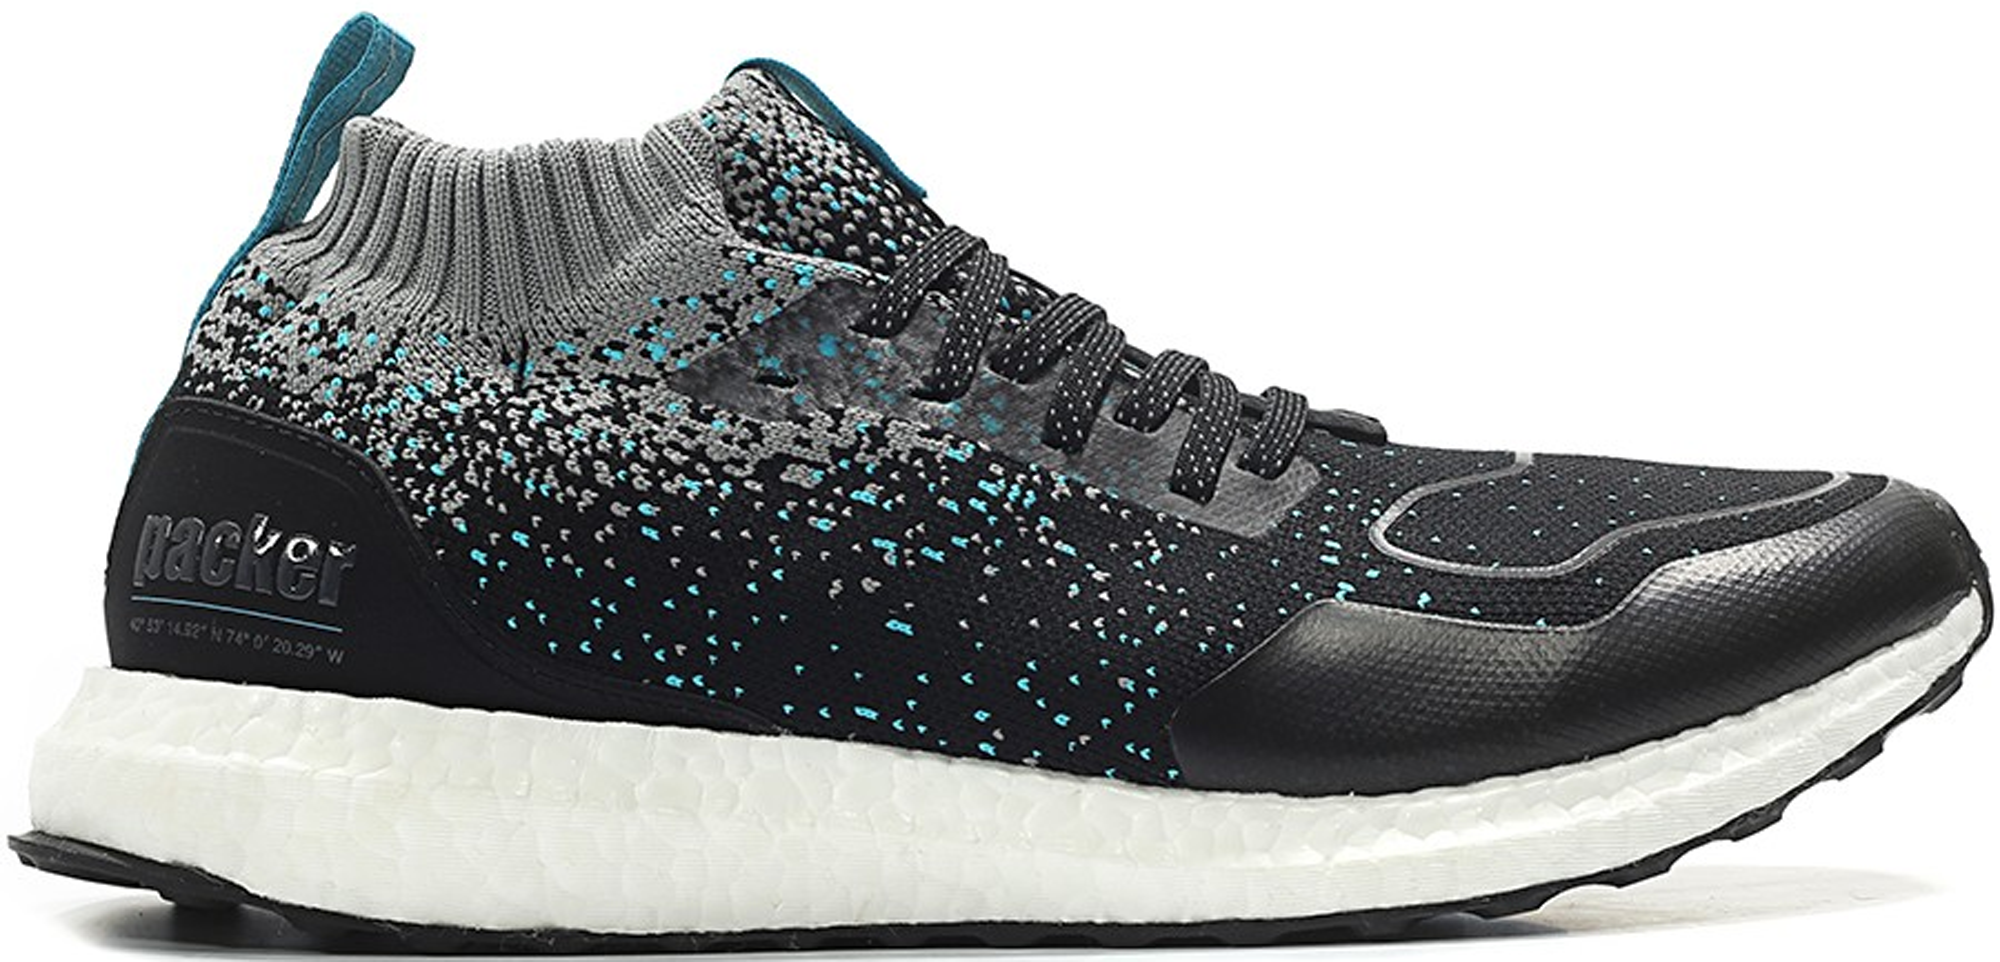 adidas Ultra Boost Mid Packer Shoes x Solebox Silfra Rift